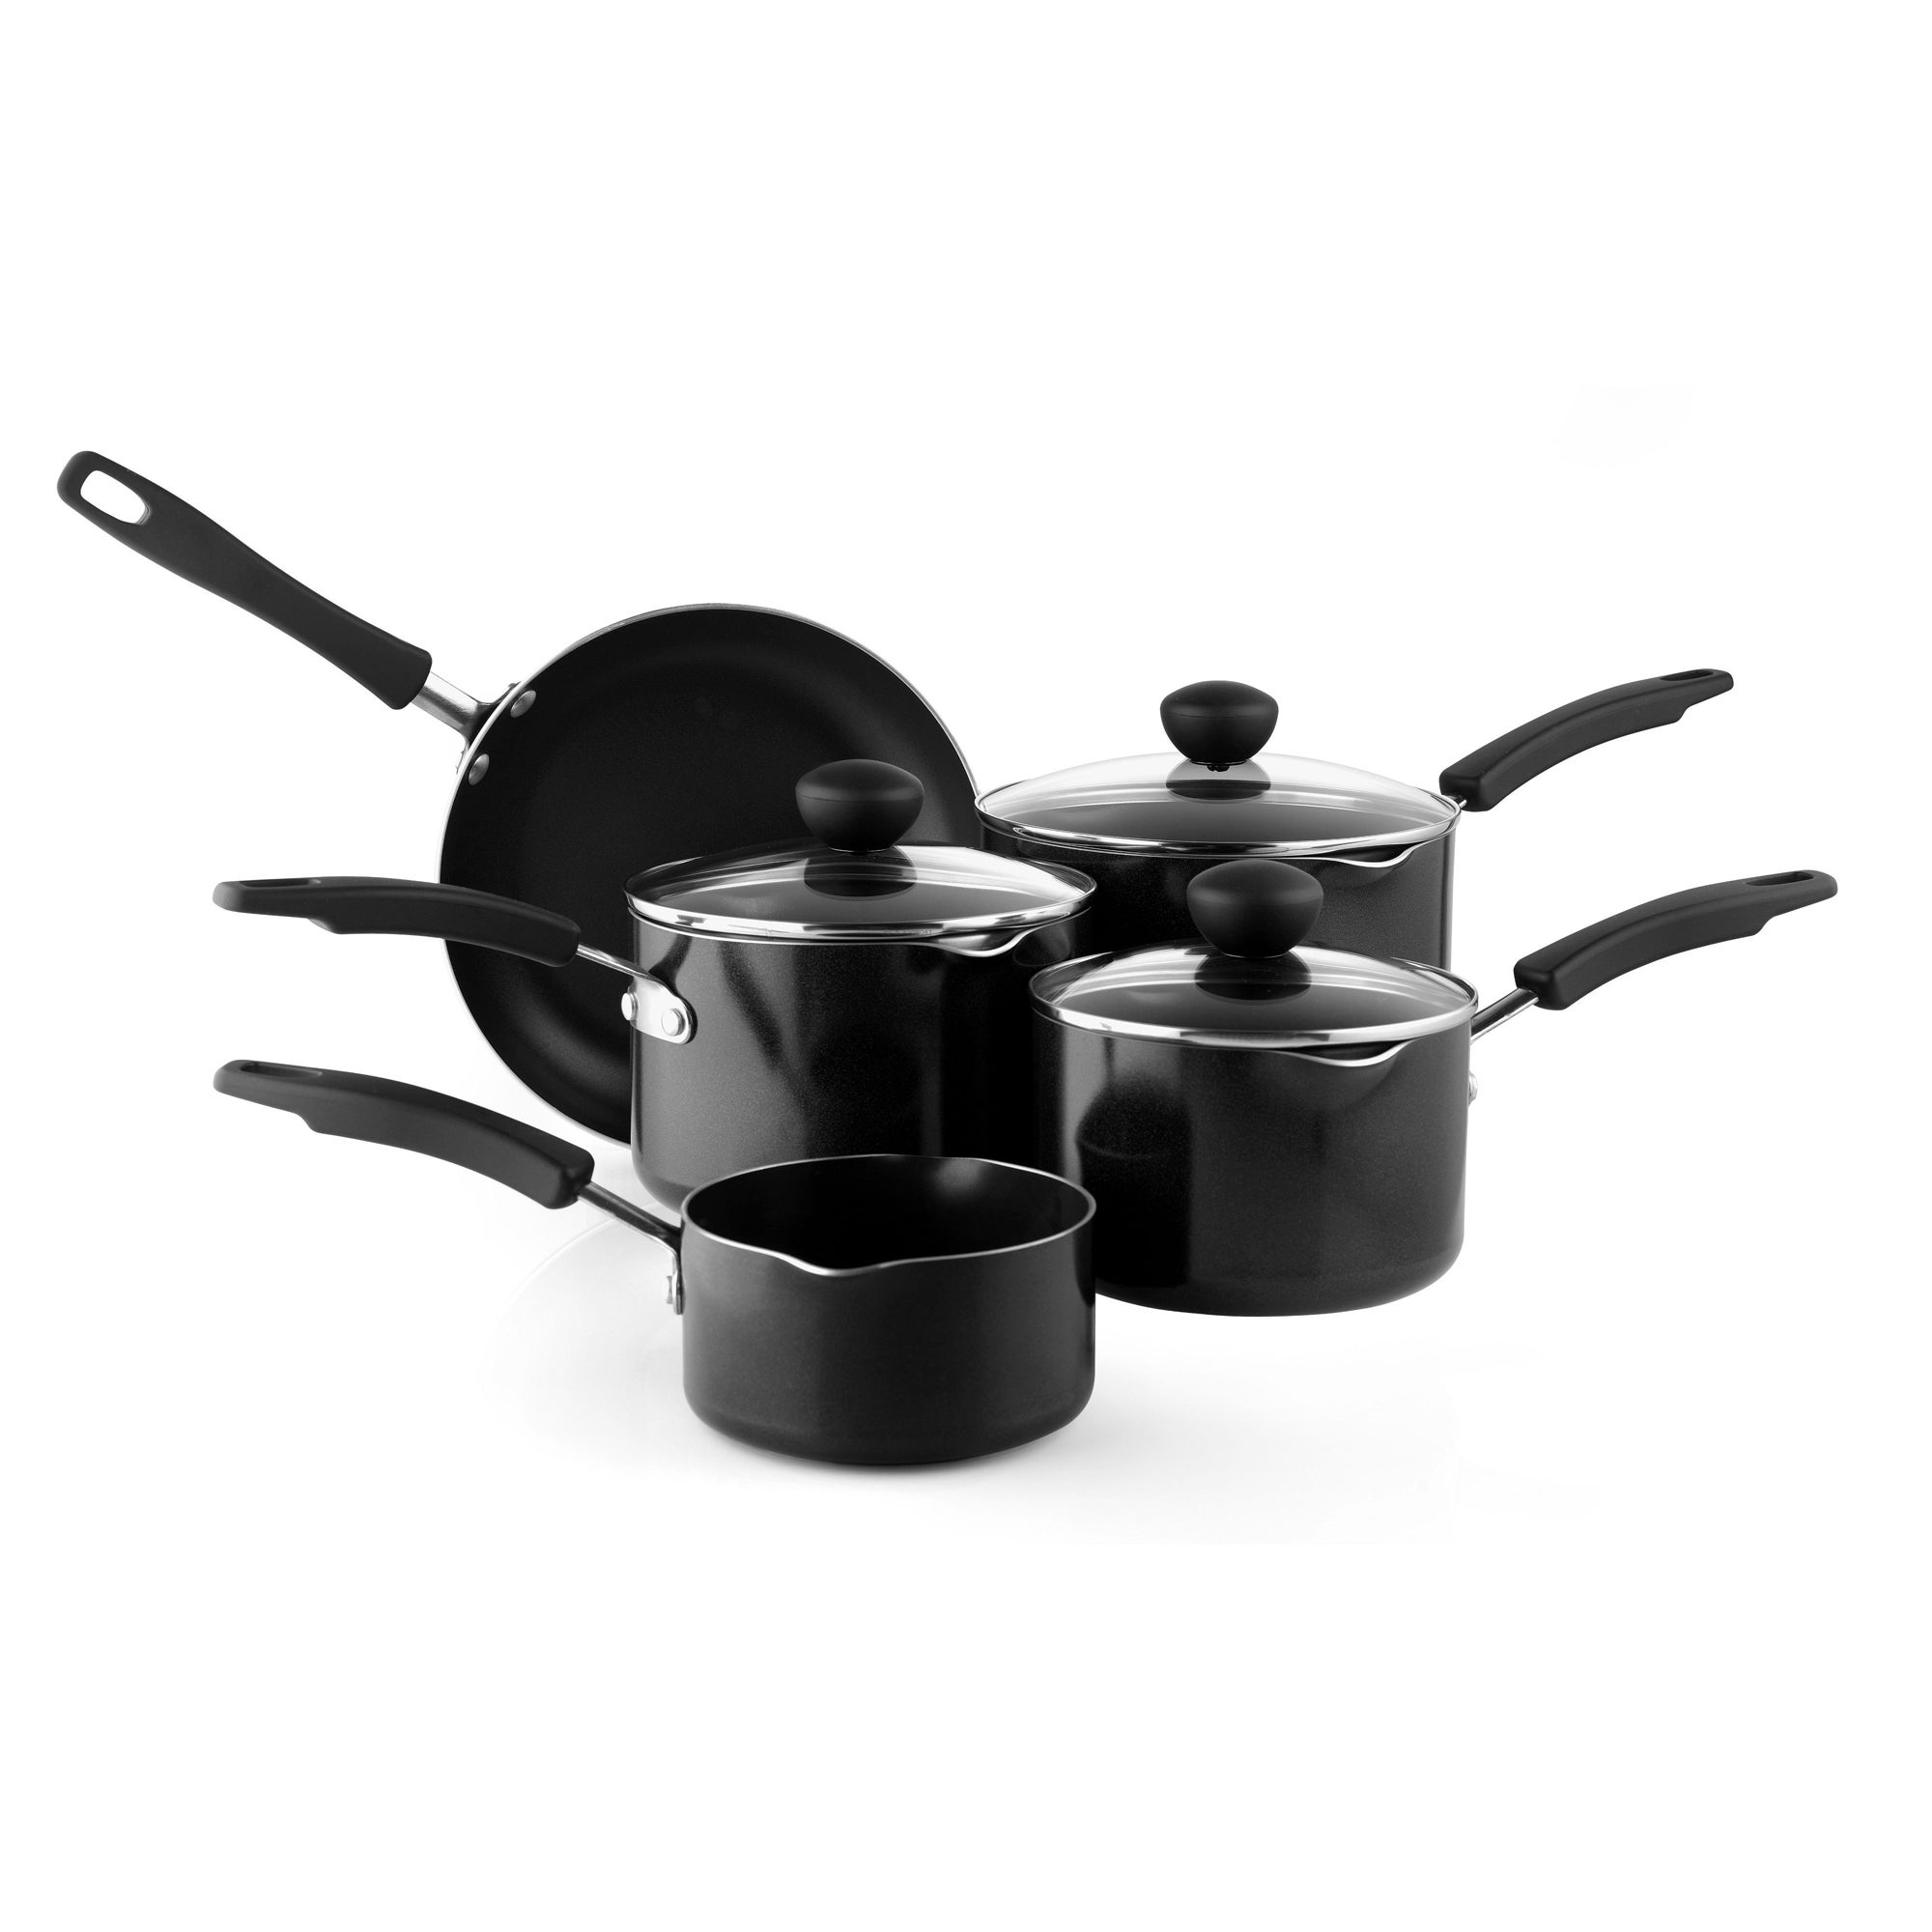 Aluminium 5 Piece Pan Set